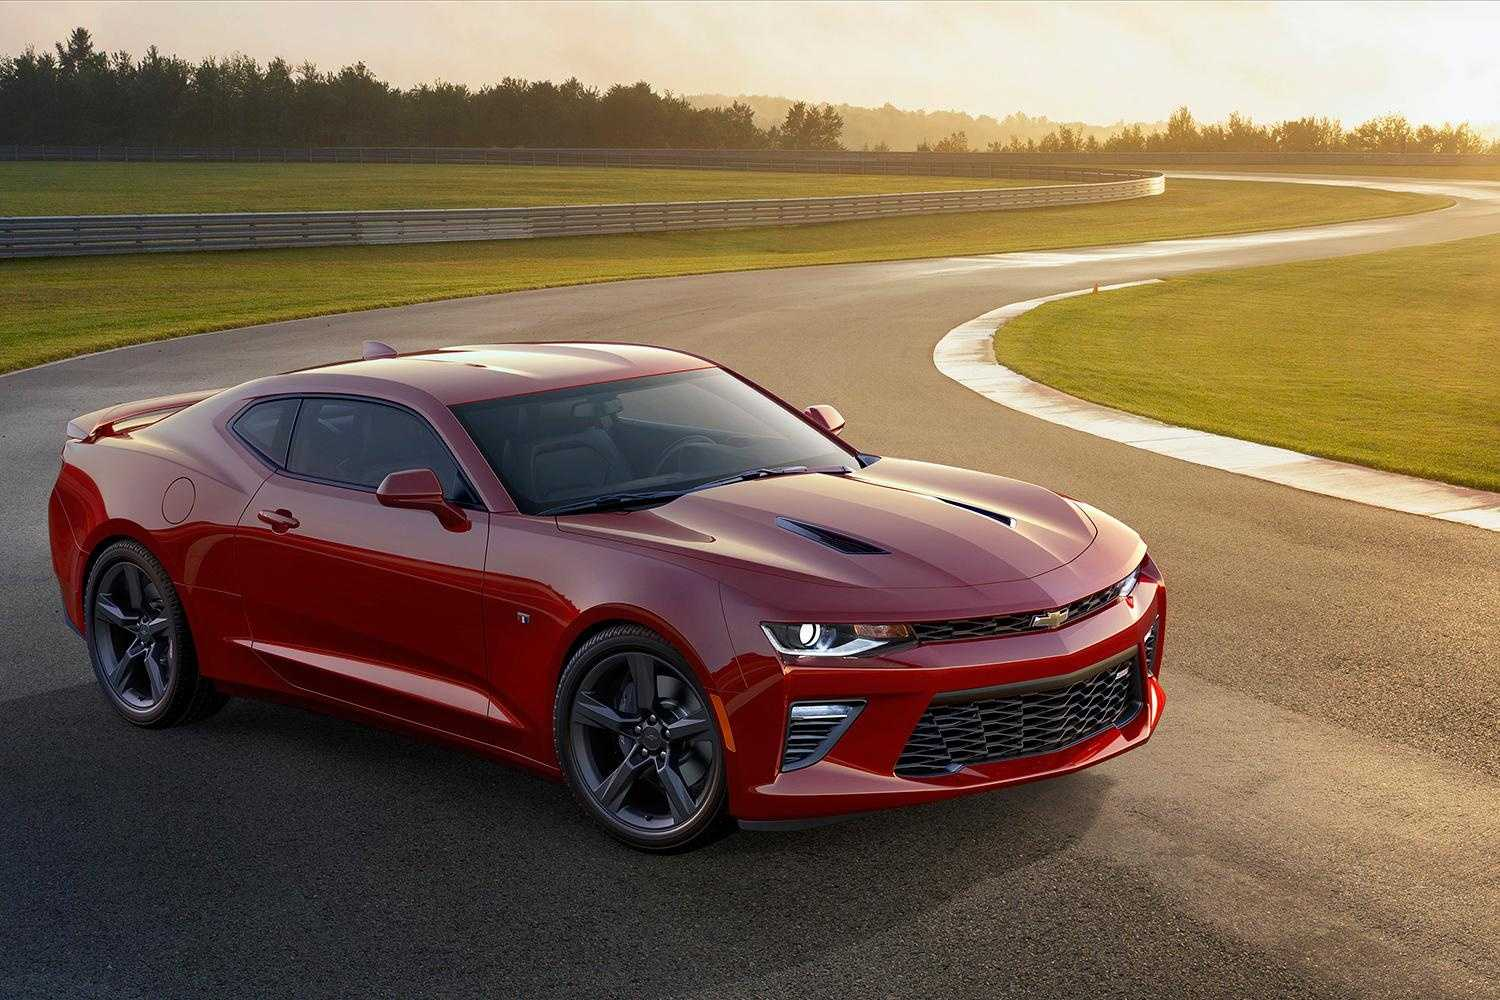 2016 Chevrolet Camaro Gets Official Pricing, Scheduled for Late 2015 Launch